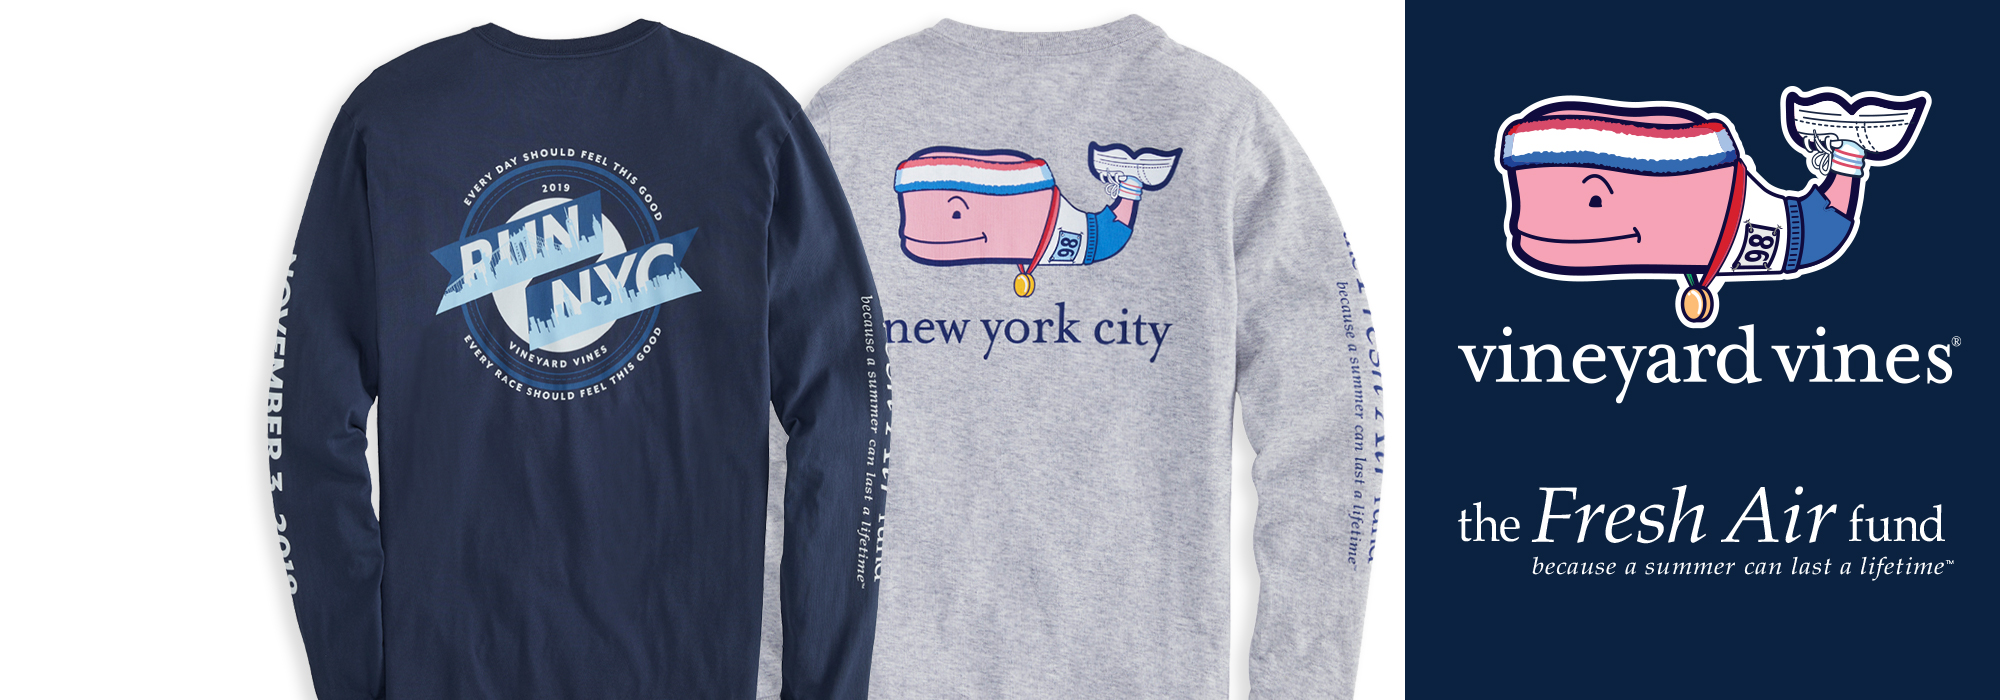 vineyard vines NYC Marathon supporting the Fresh Air Fund. 30% of proceeds will go to the Fresh Air Fund